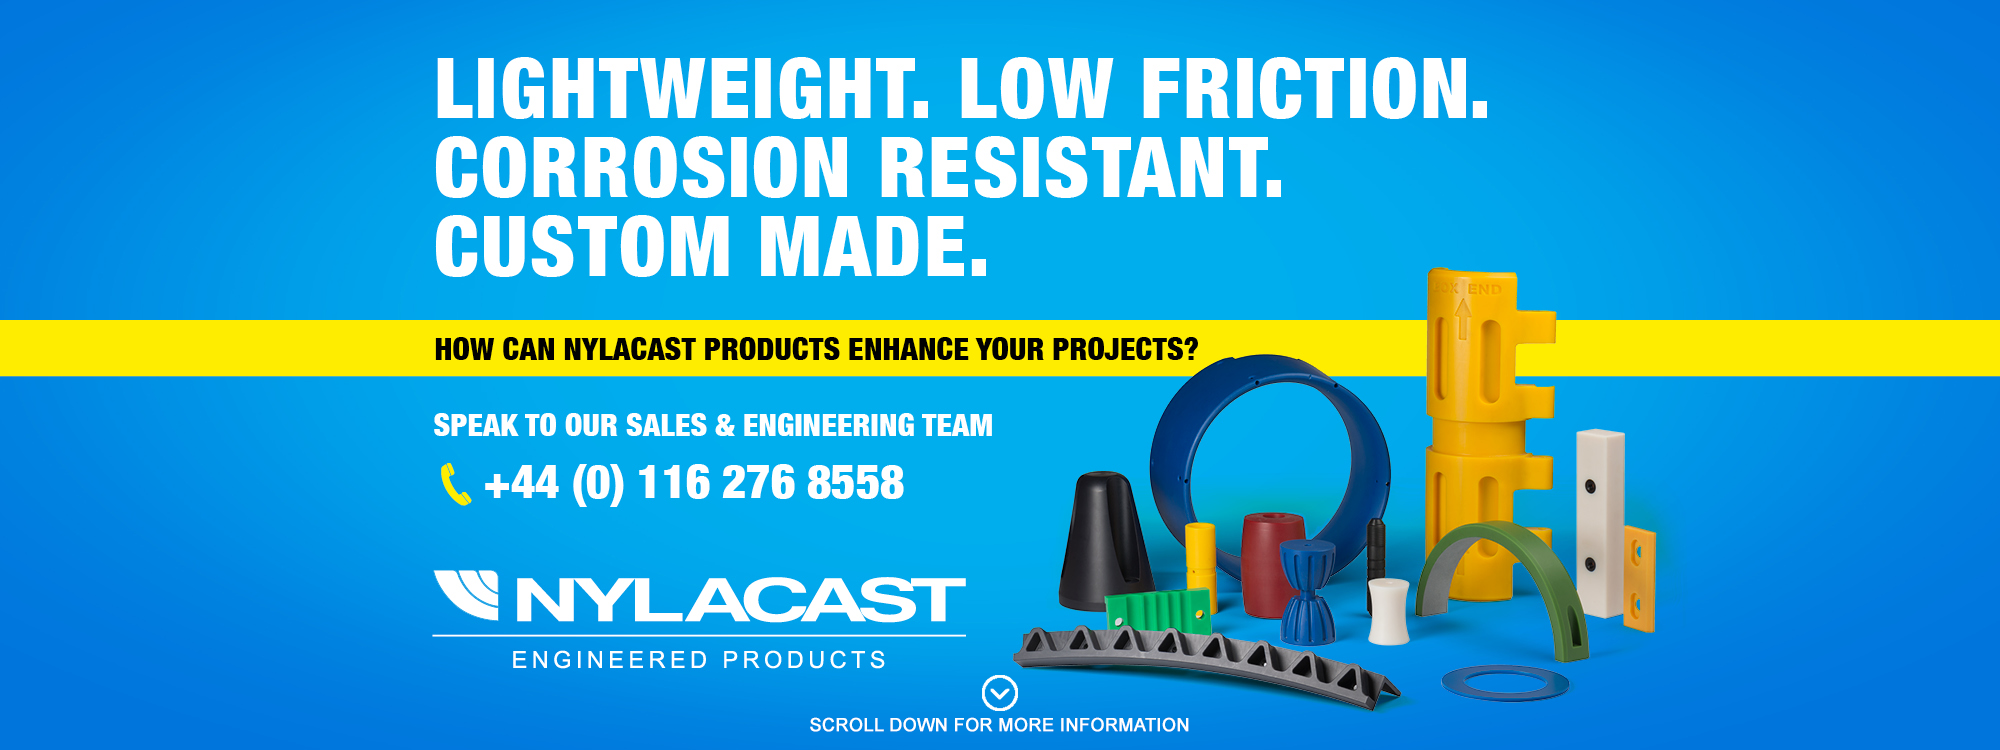 Nylacast projects